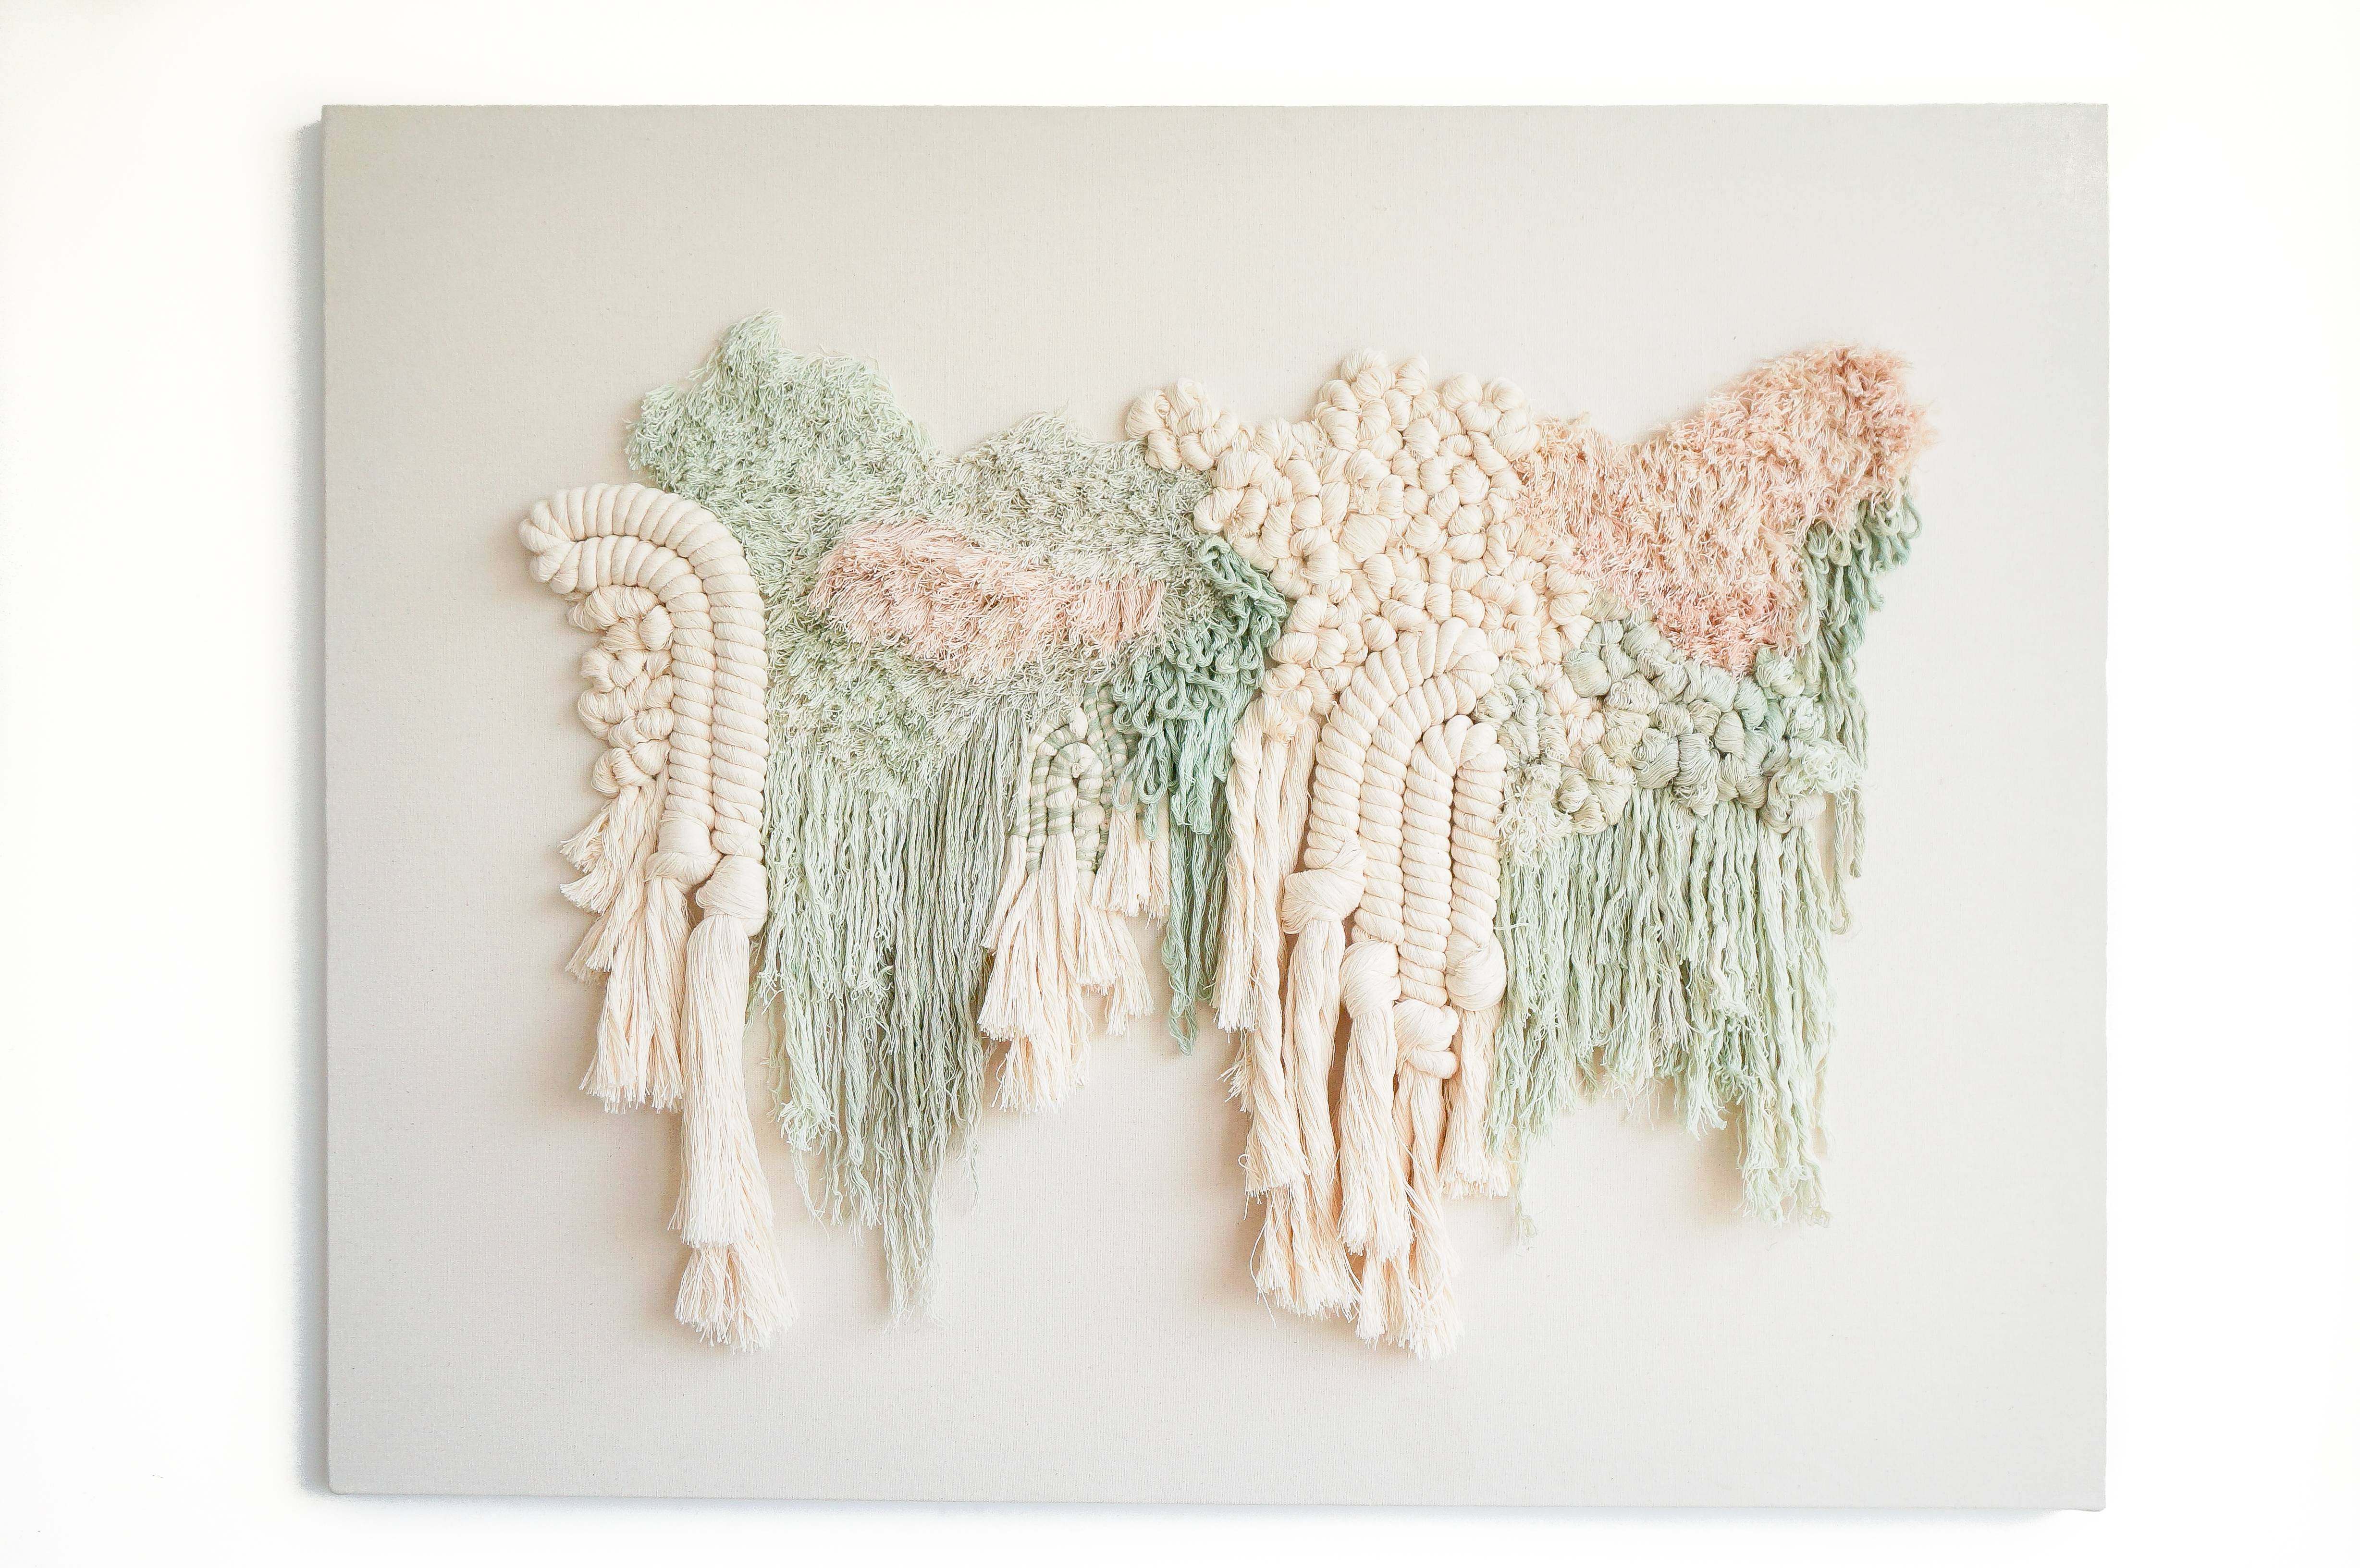 Fiber art piece by Mariana Baertl